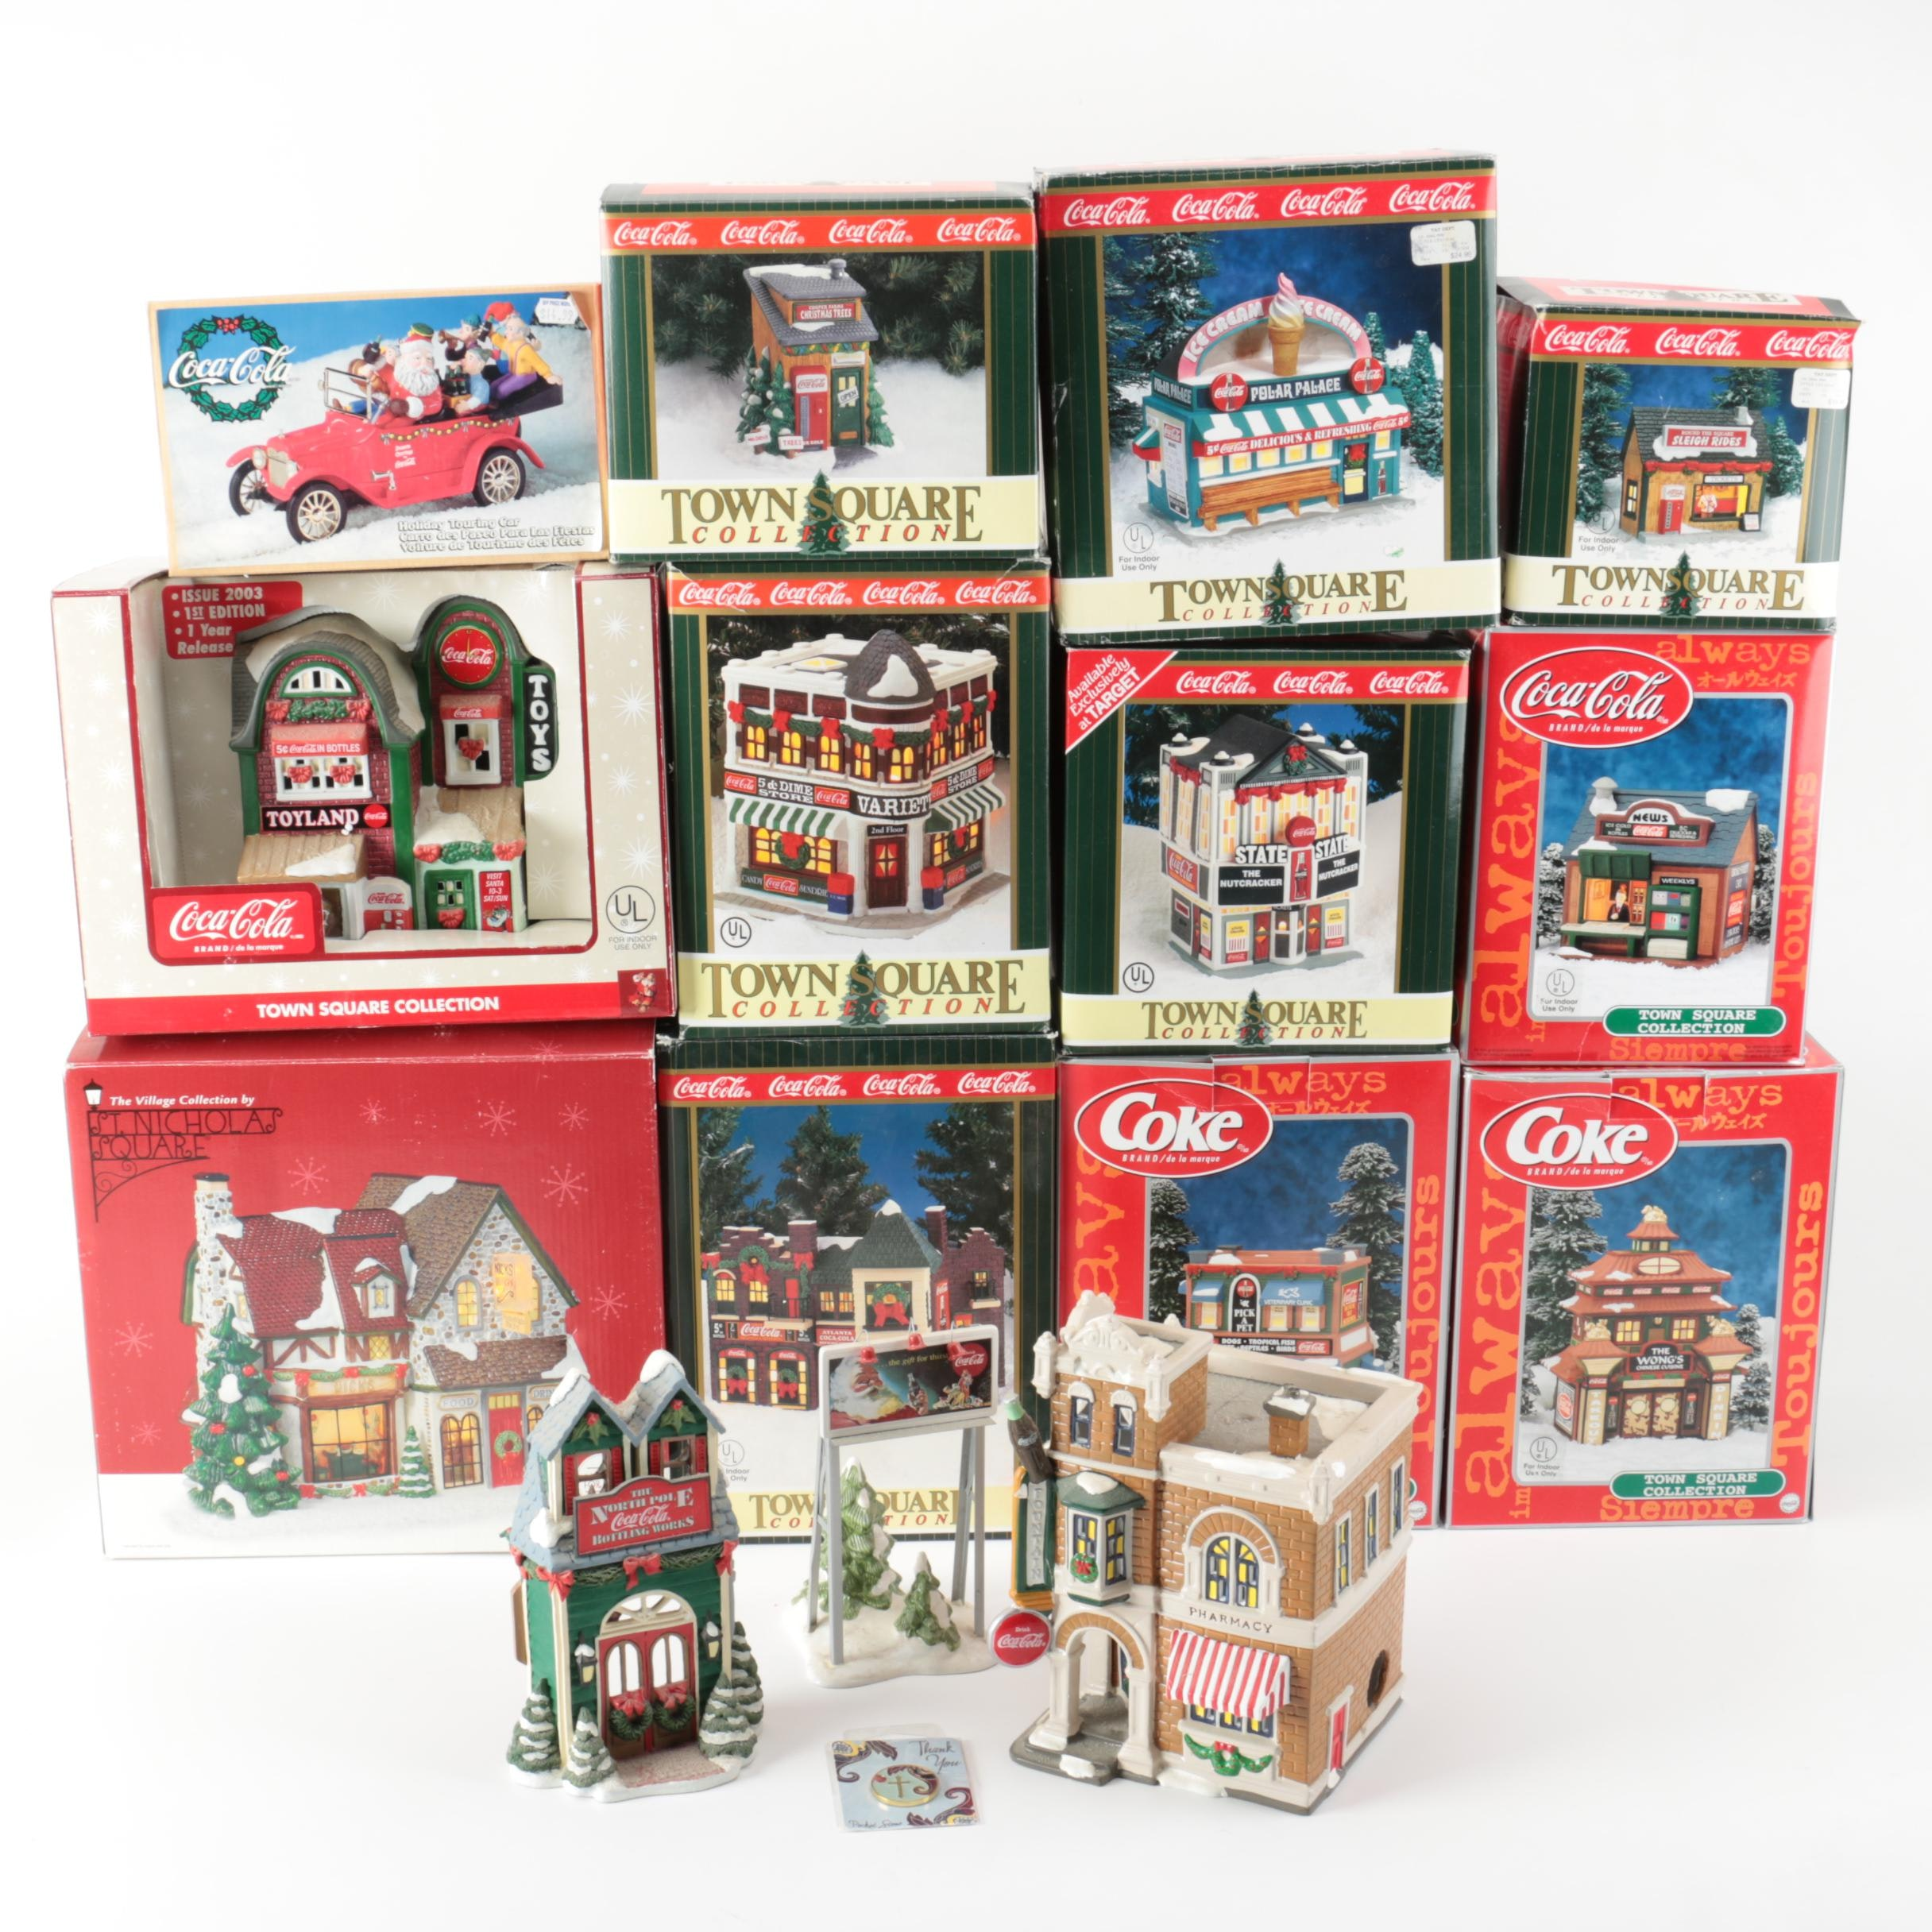 Coca-Cola and Coke Town Square Collection Miniature Buildings